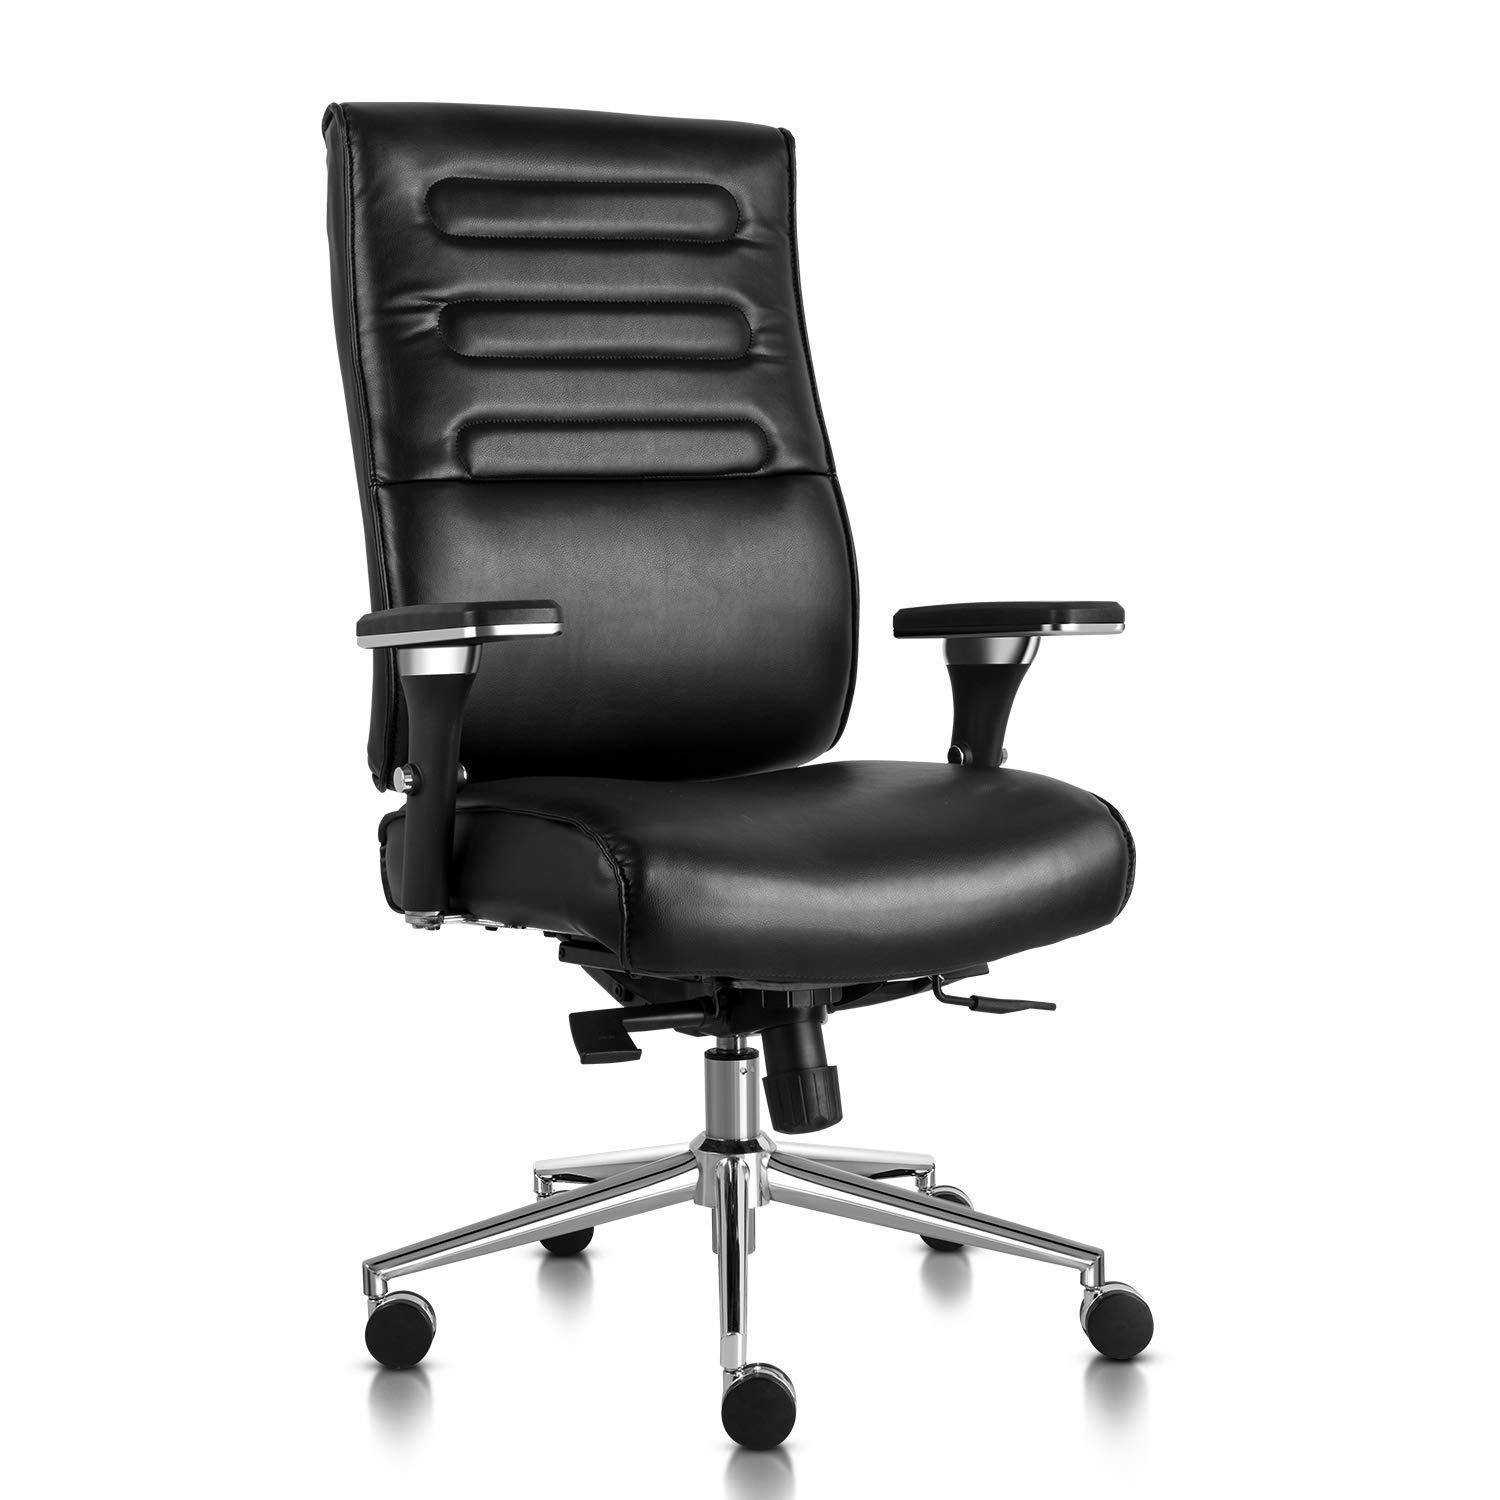 Executive Office Chair High Back Bonded Leather Desk Chair with Adjustable Armrests and Sliding Spring Seat (Black) by SmugOffice